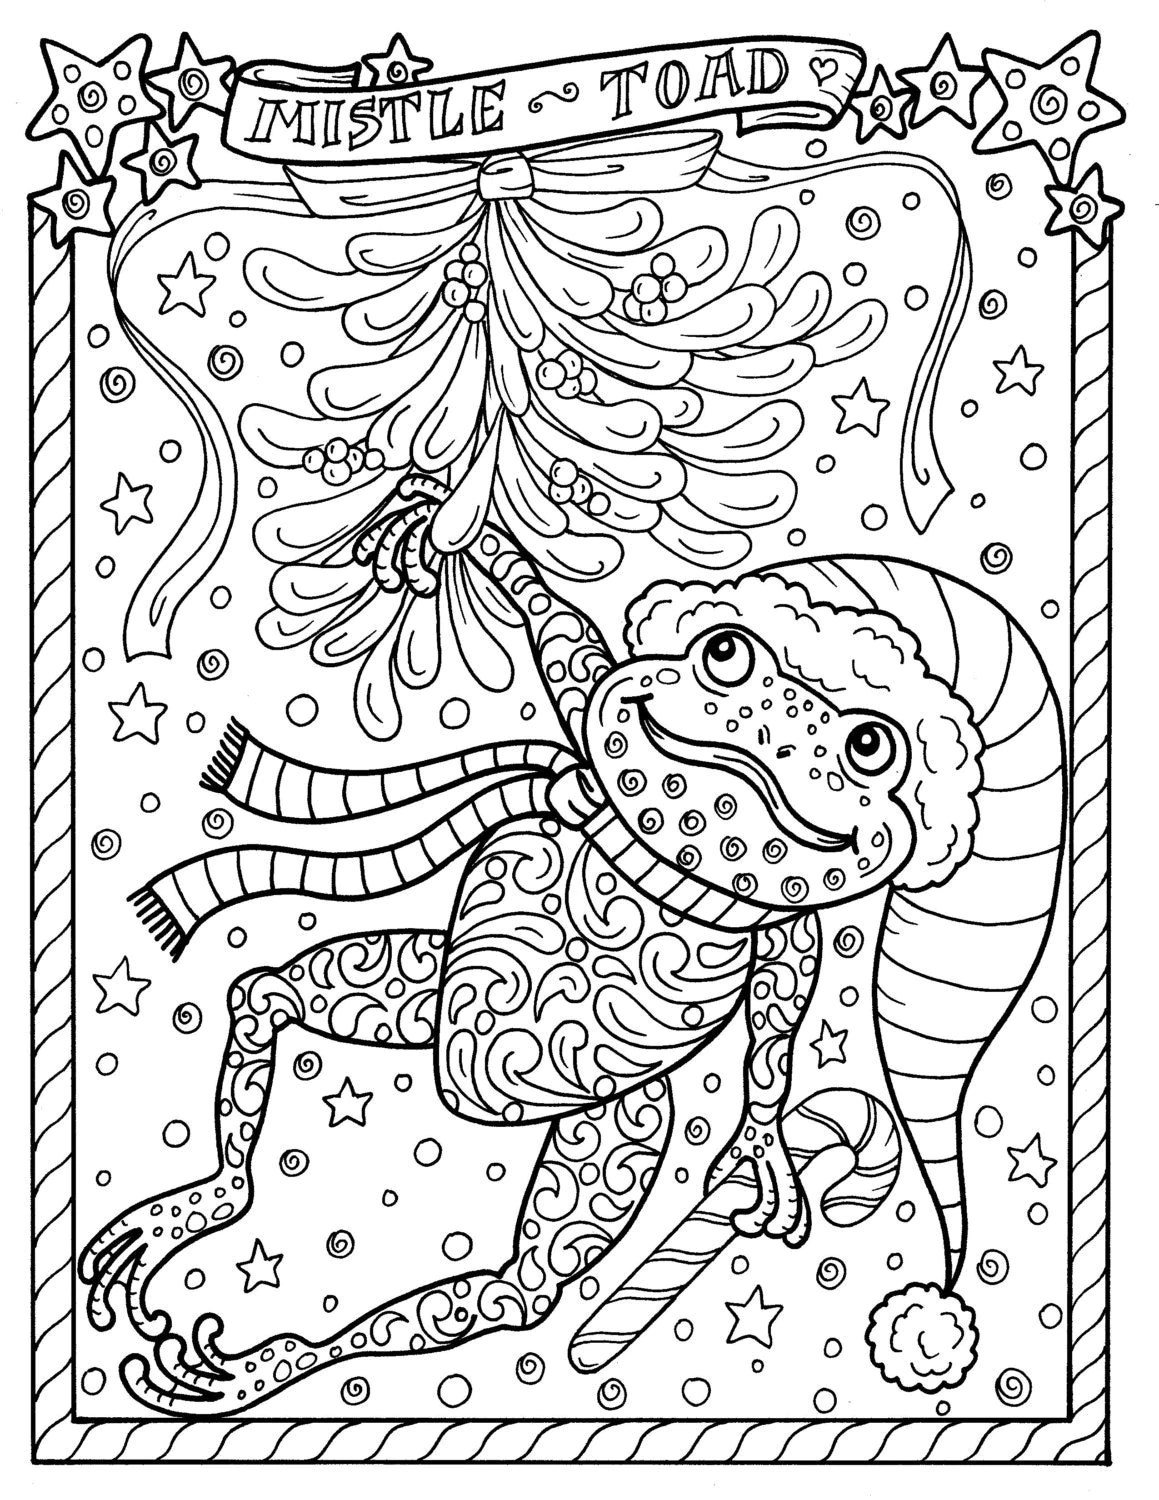 Frog Printable Coloring Page Christmas Mistle Toad Coloring